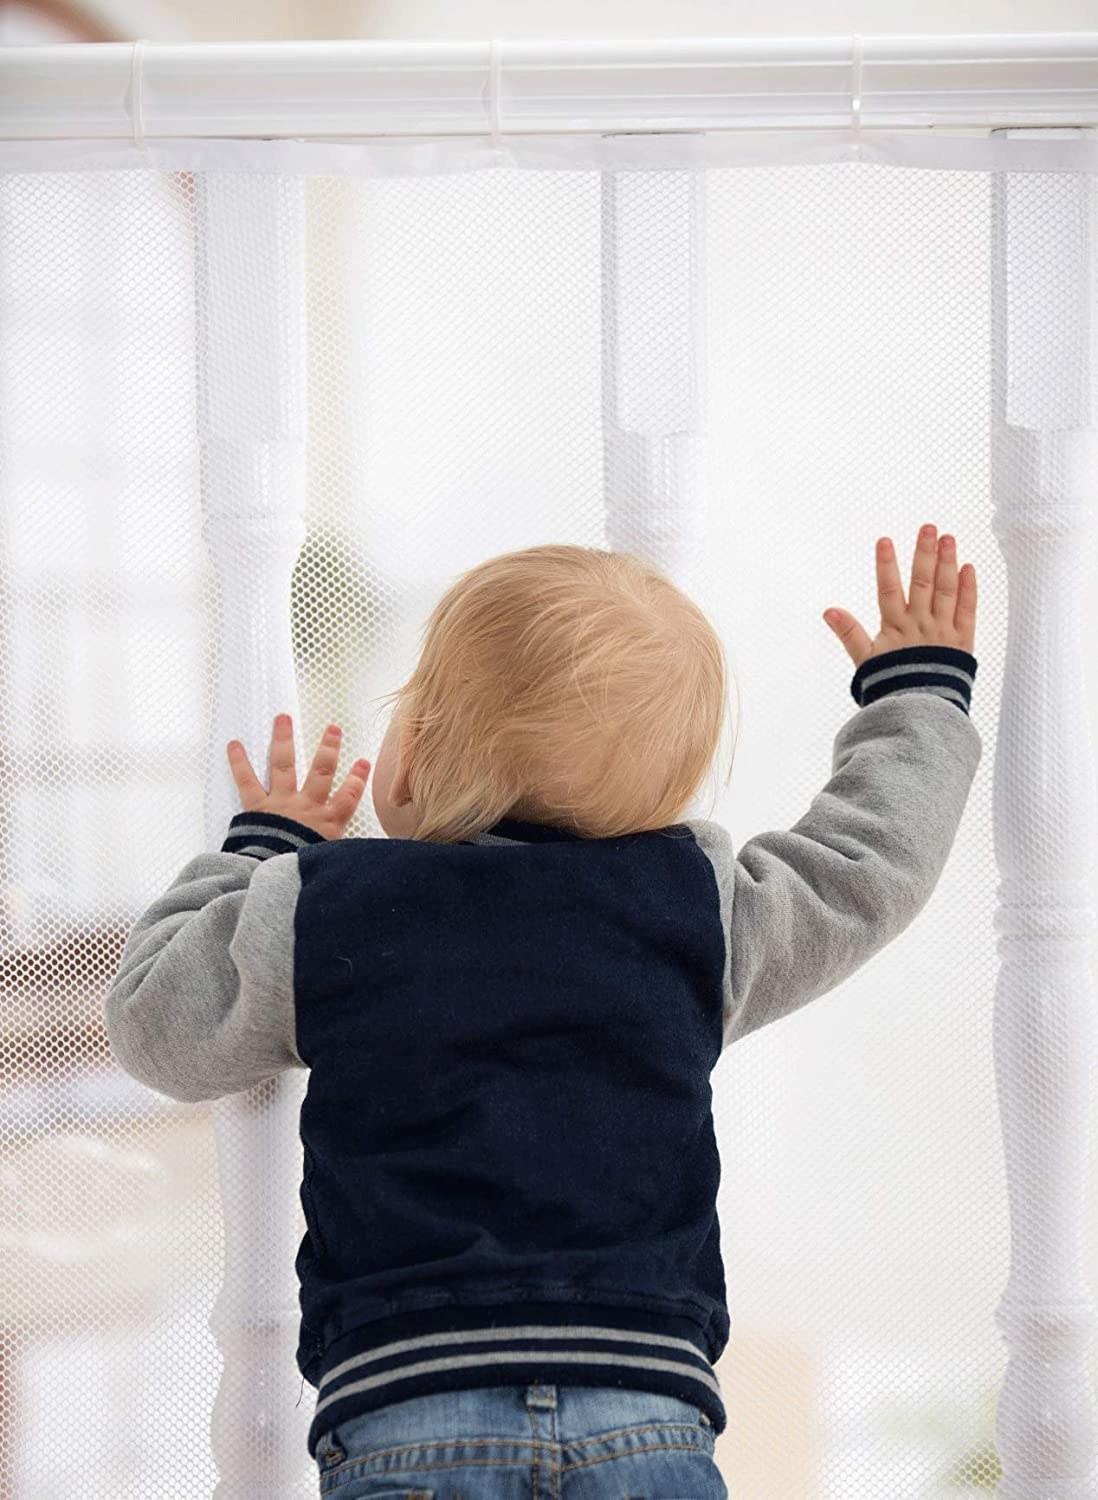 A baby standing up against a railing that is covered by the mesh gate, preventing them from slipping between the poles